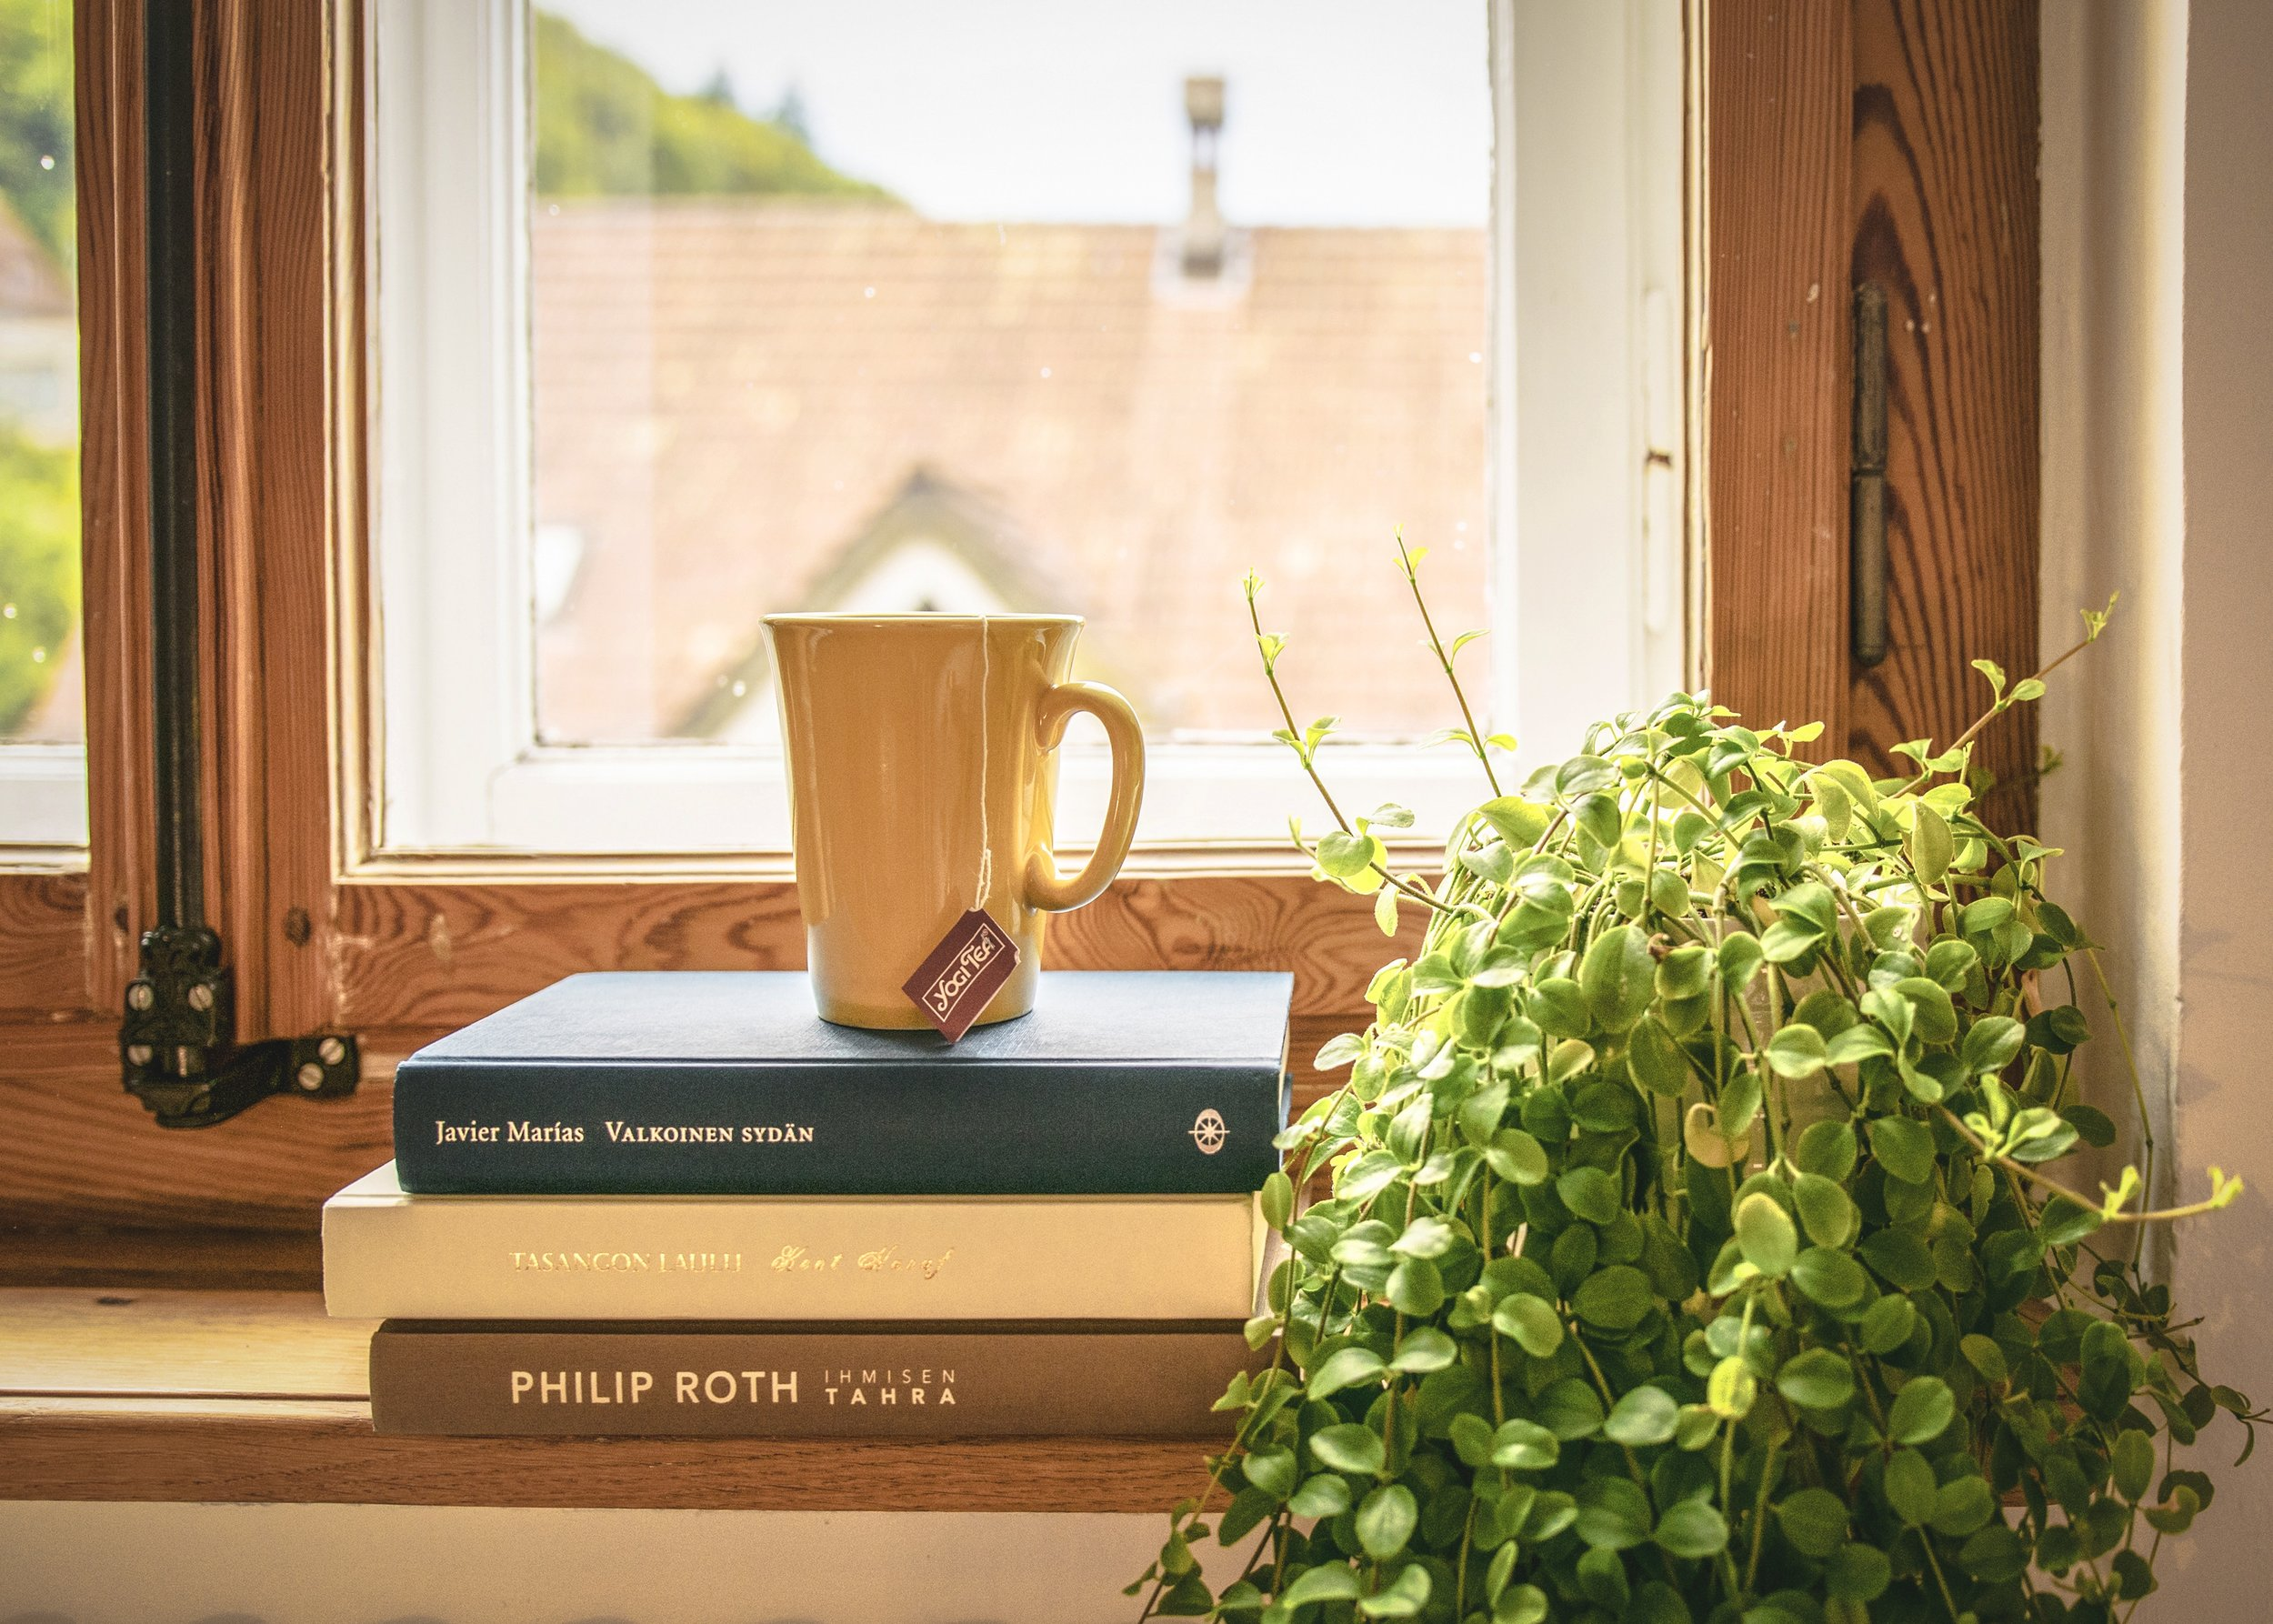 Book and Windowsill.jpg